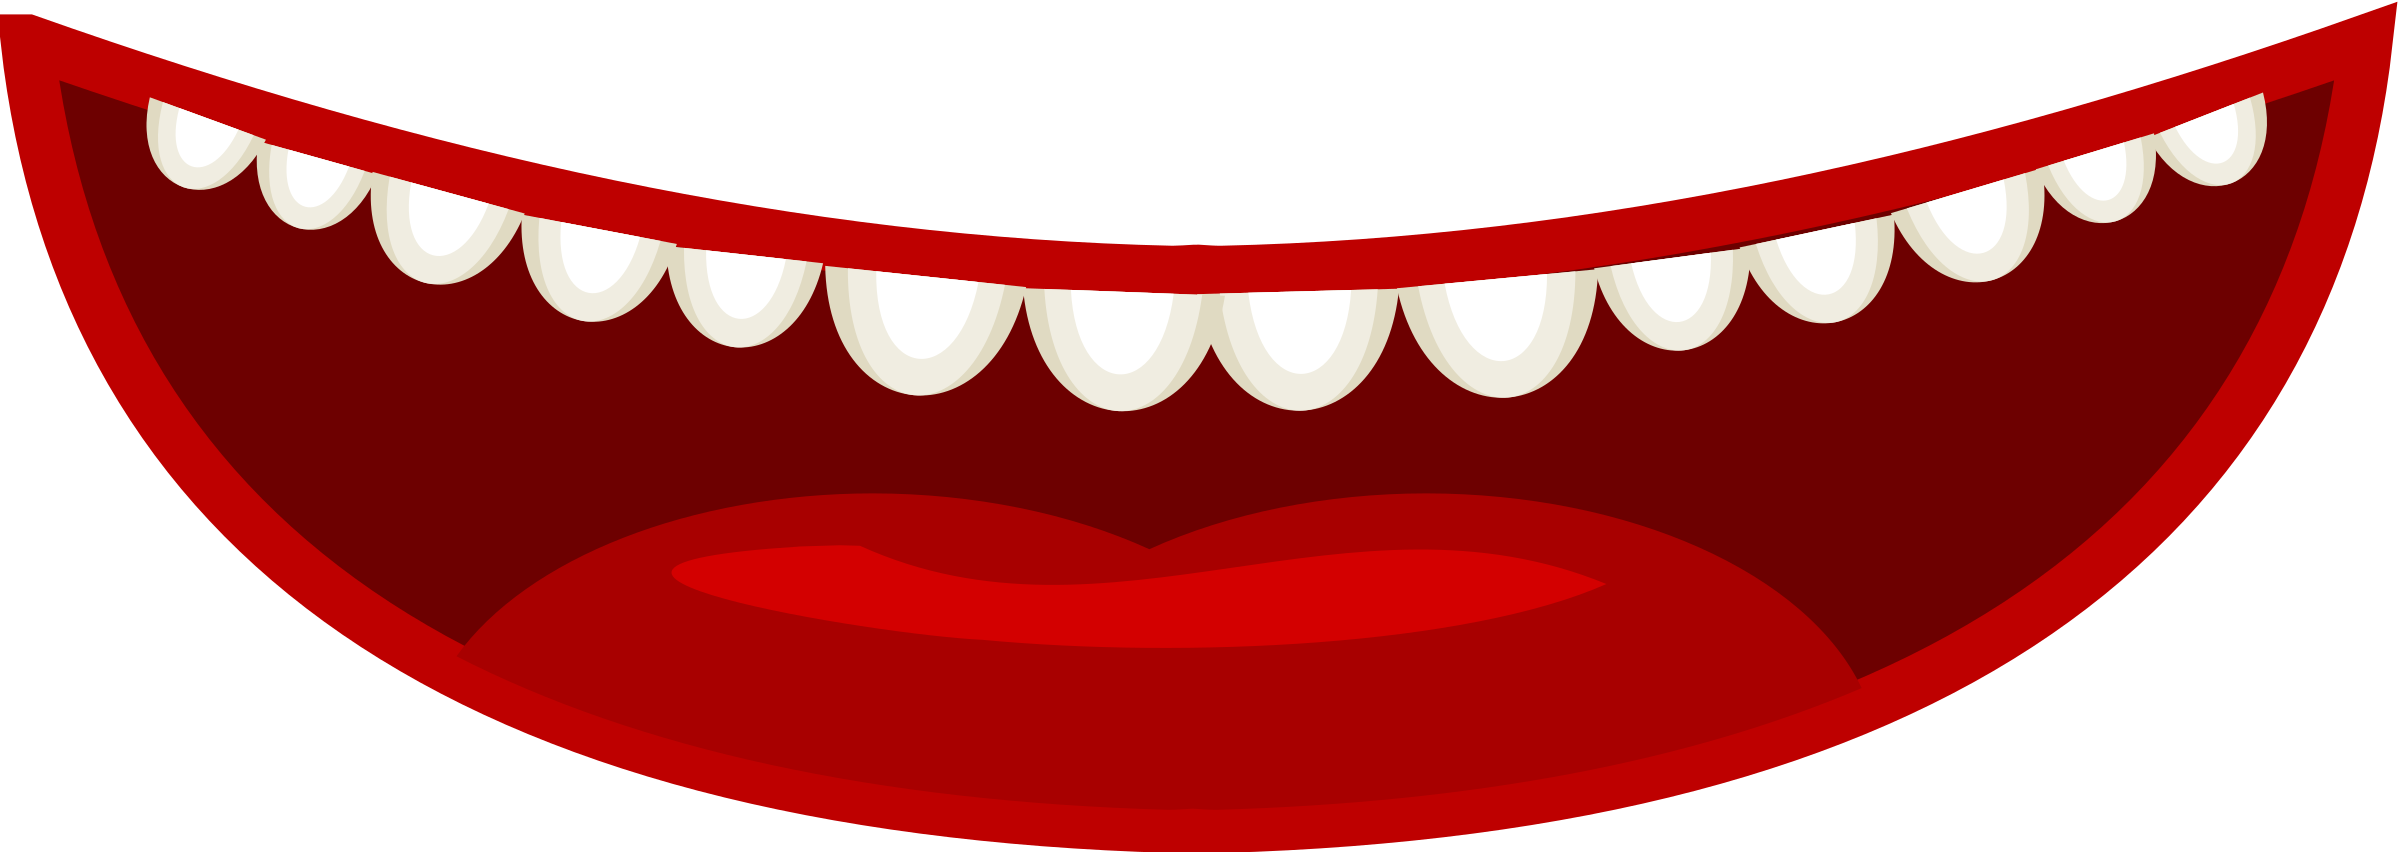 Smile Lips PNG - 45669